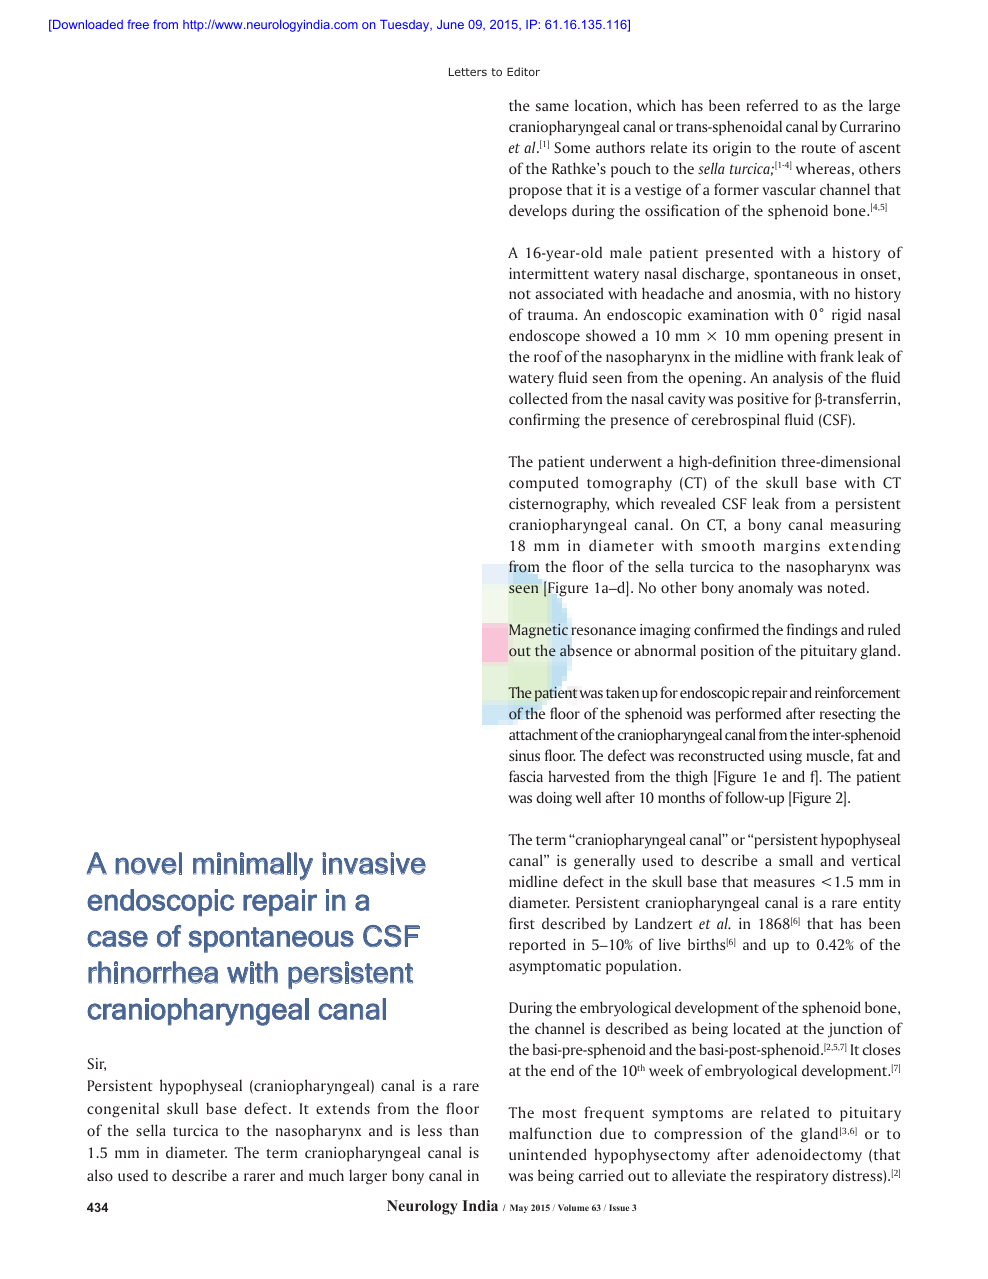 A Novel Minimally Invasive Endoscopic Repair In A Case Of